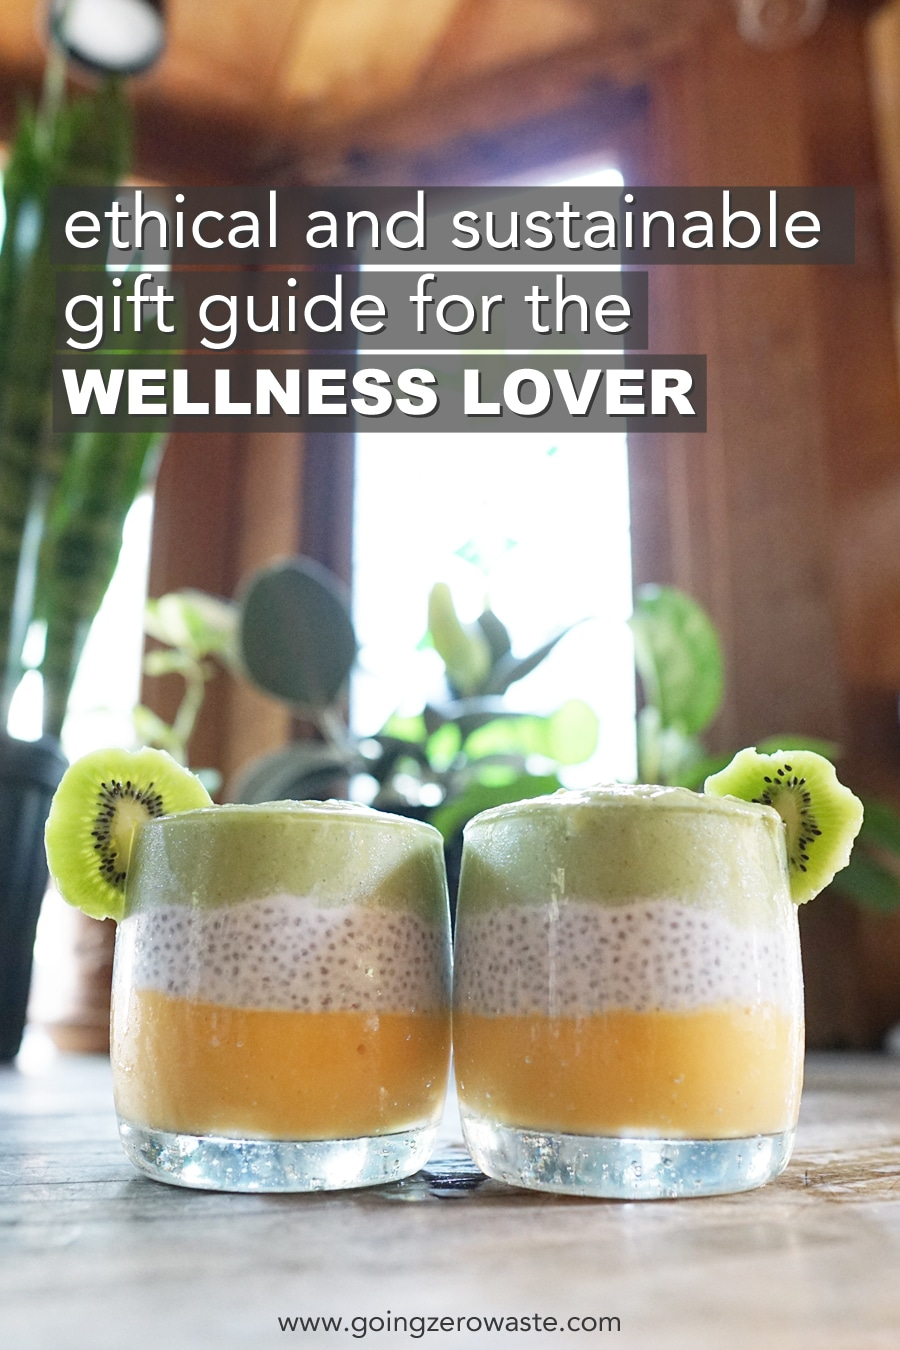 Ethical and Sustainable Gift Guide for the Wellness Lover